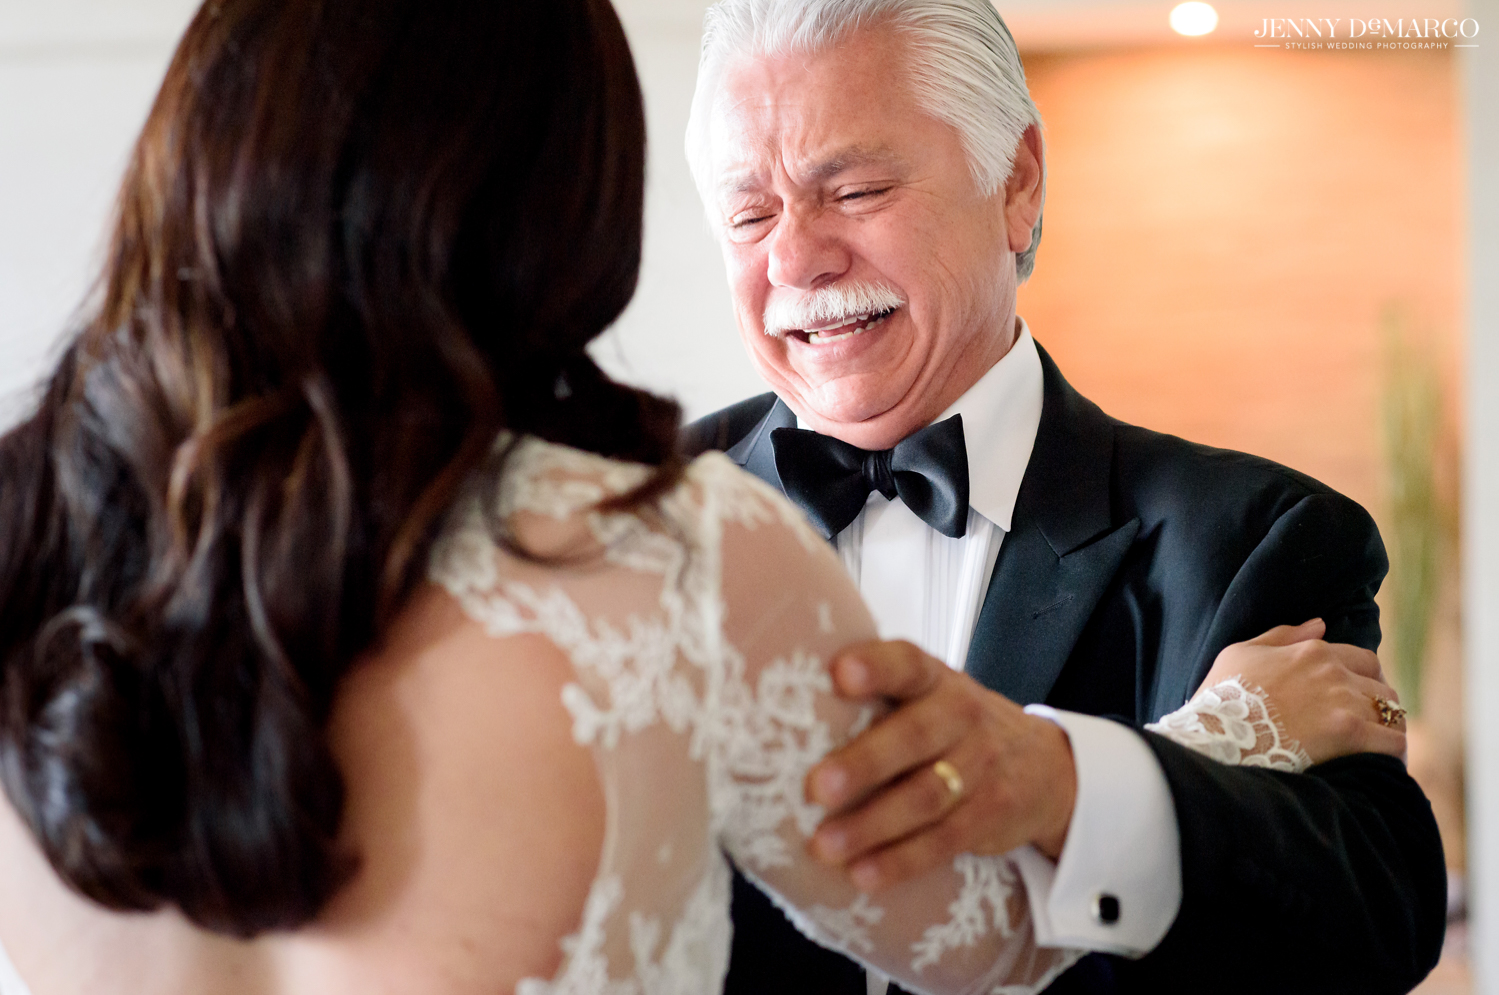 father of the bride crying while he looks at his daughter in her wedding dress